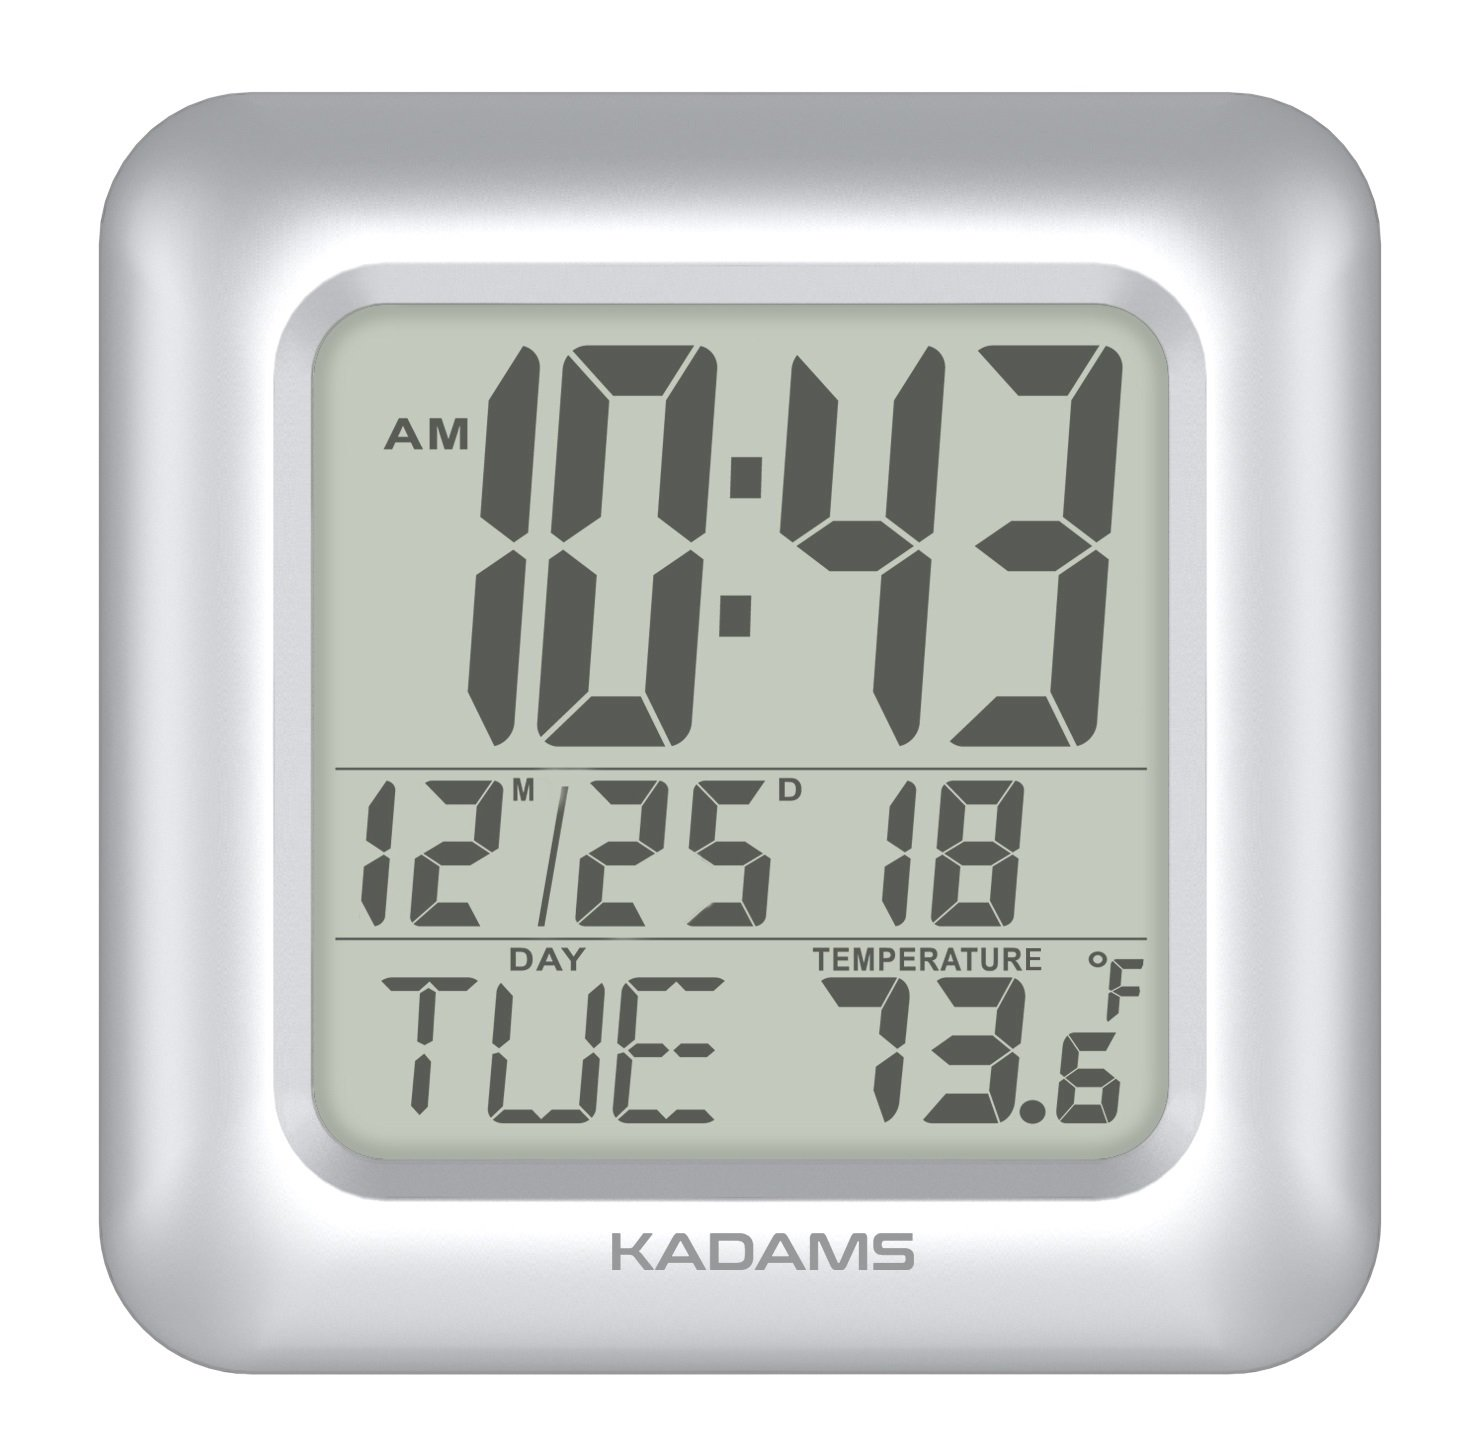 KADAMS Digital Bathroom Shower Clock, Waterproof for Water Spray, Temperature, Seconds Counter, Humidity and Moisture Proof, Month Date Day Display, Suction Cups, Table Stand, Wall Clock - SILVER by KADAMS